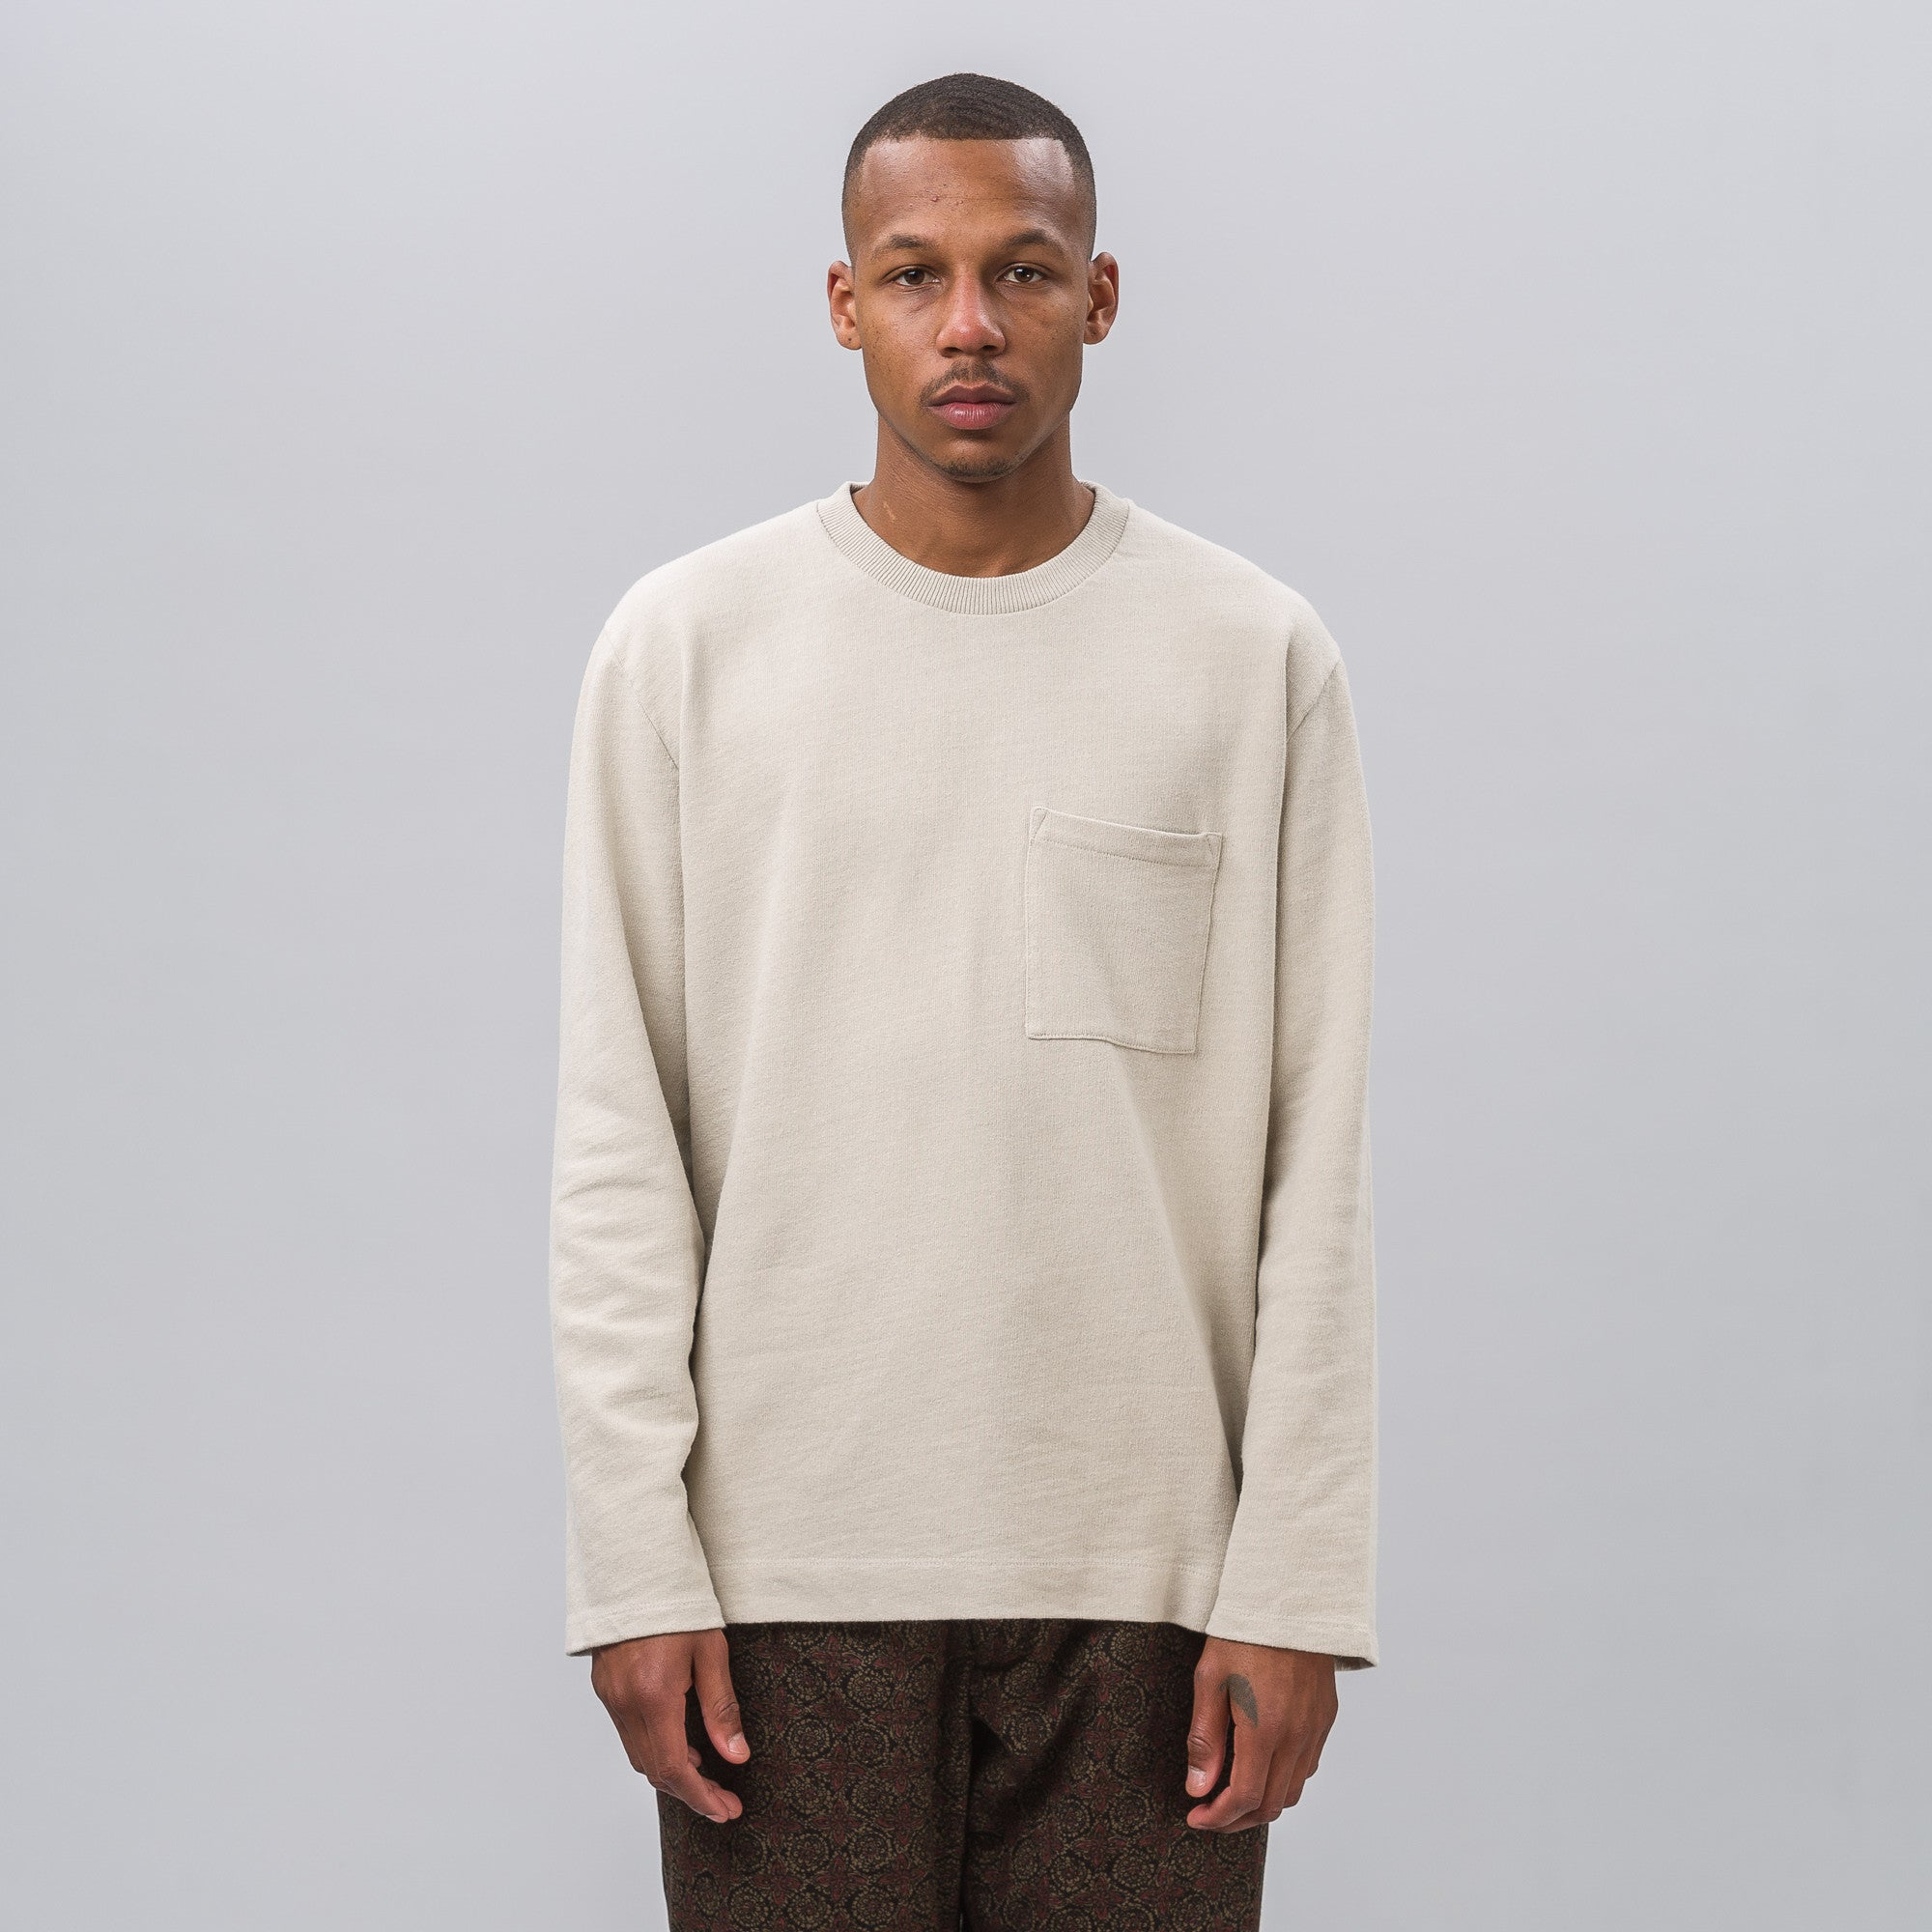 Box Longsleeve in Sand Cotton